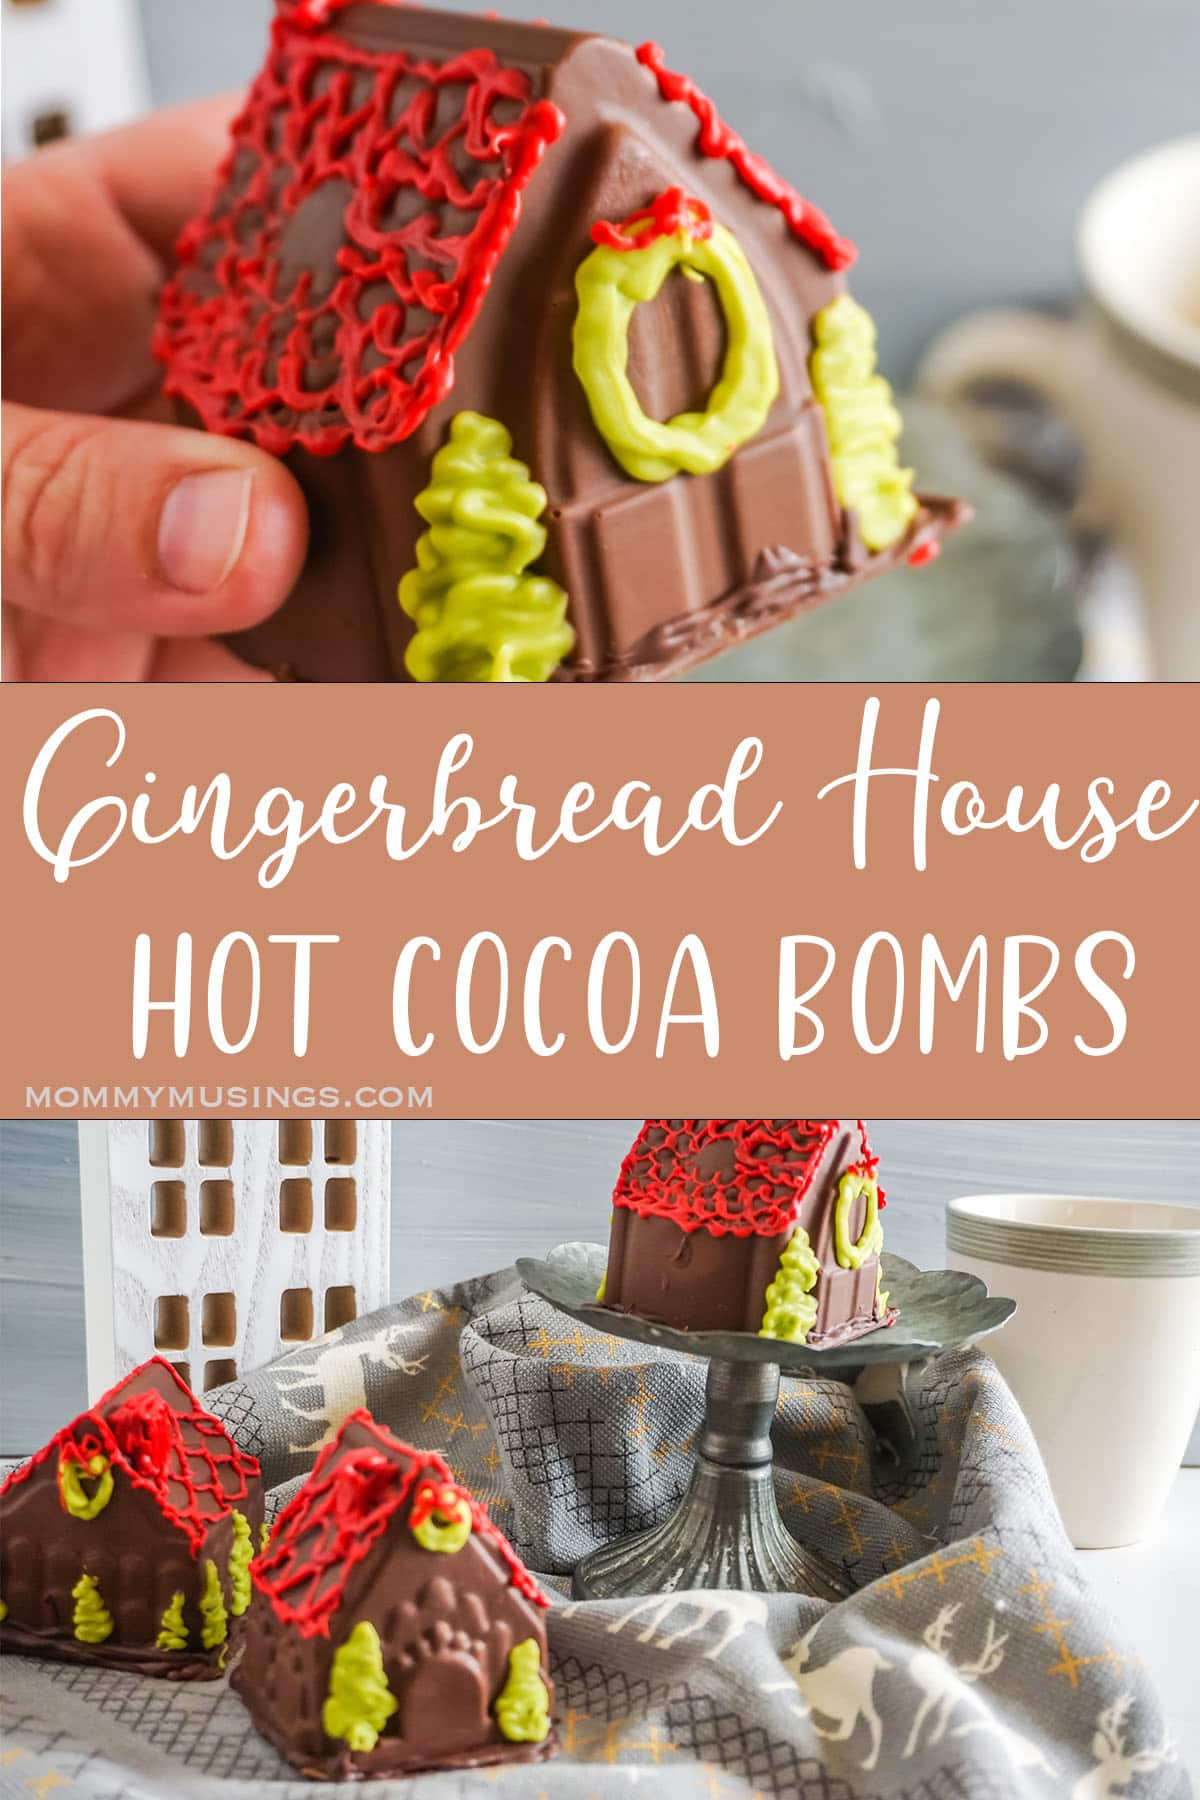 photo collage of gingerbread hot cocoa bombs with text which reads Gingerbread House Hot Cocoa Bombs